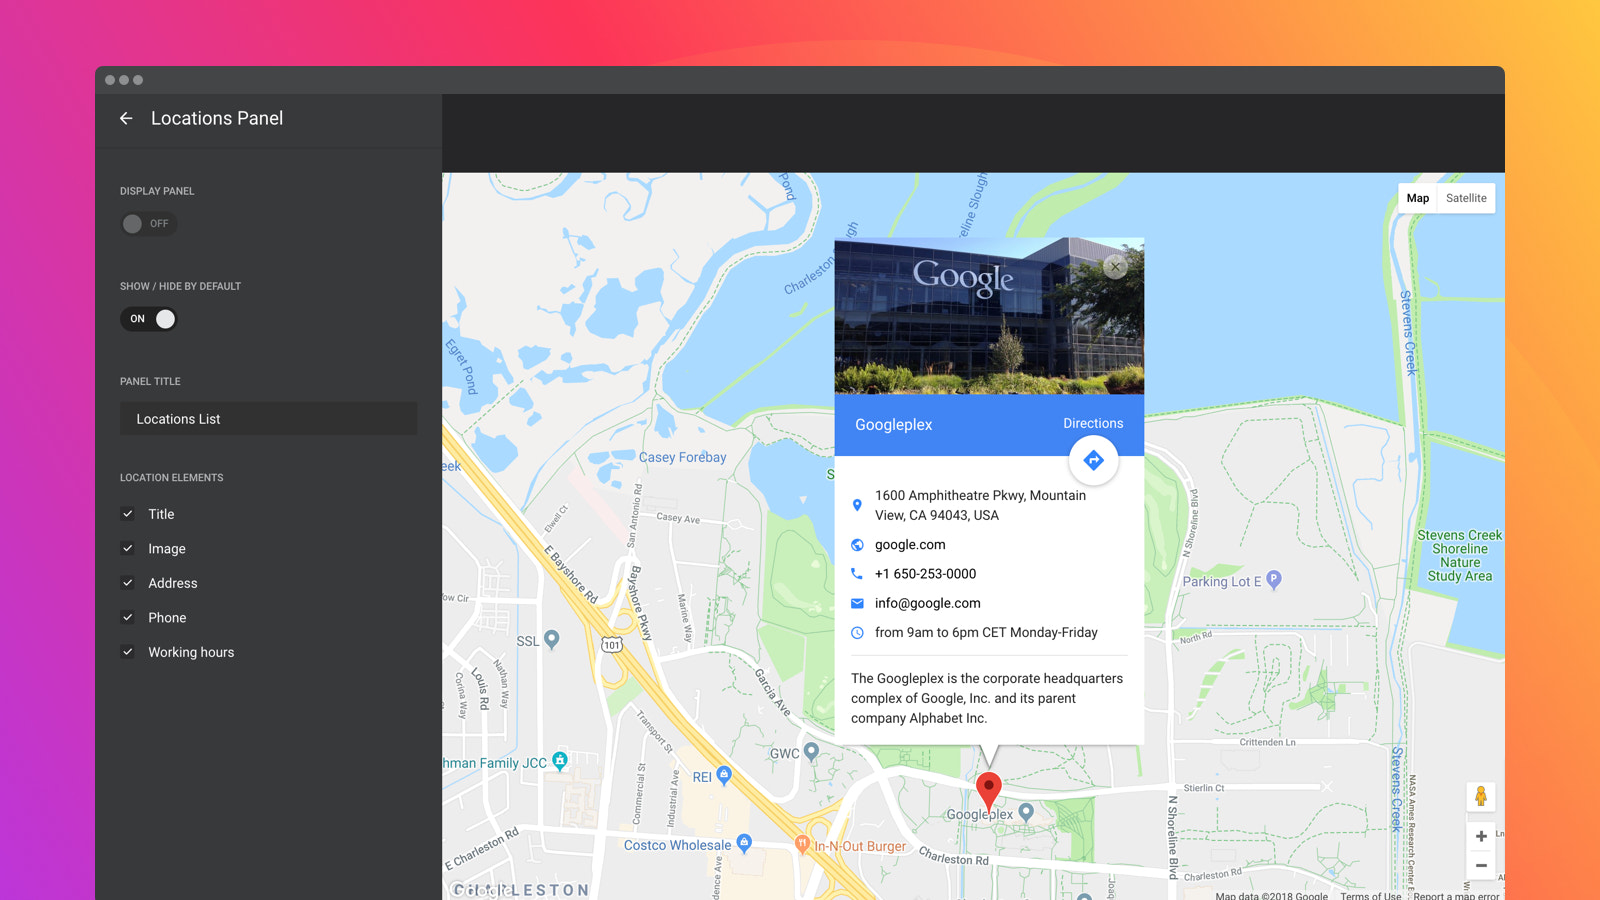 All Google maps settings available: layers, controls and zoom